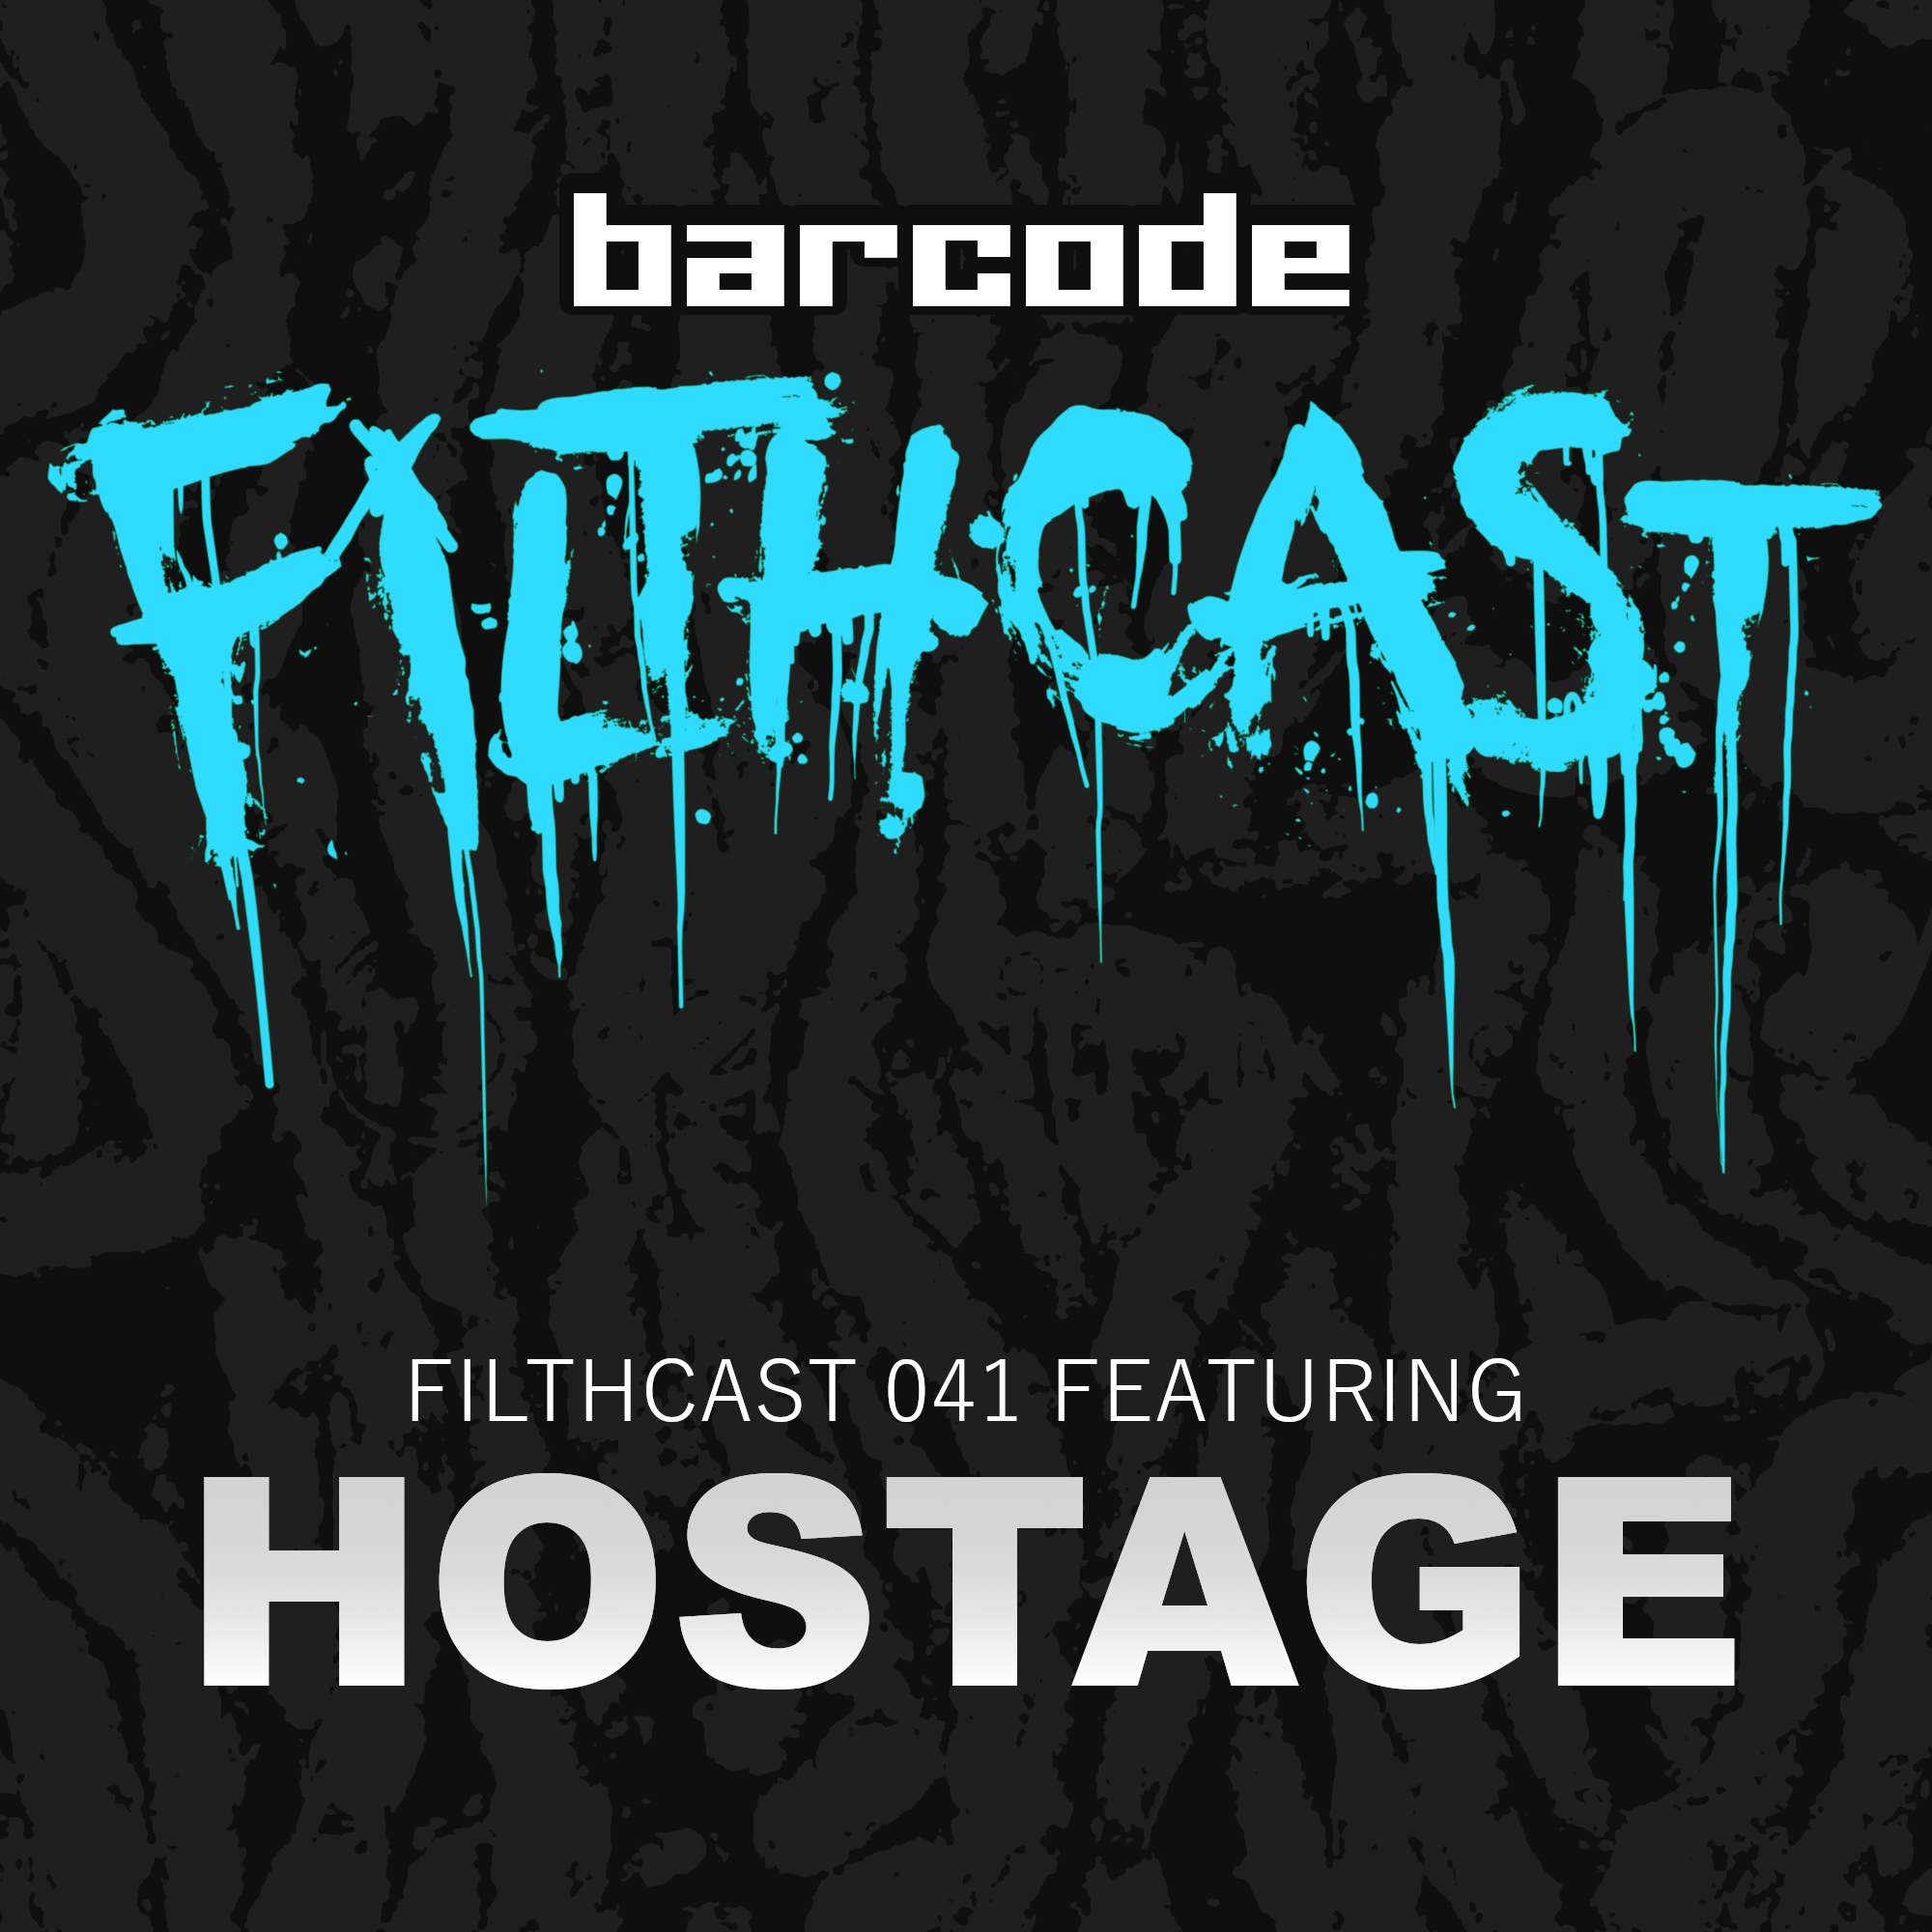 It's Friday the 13th! No better time for a brand new filthcast, featuring Hostage!